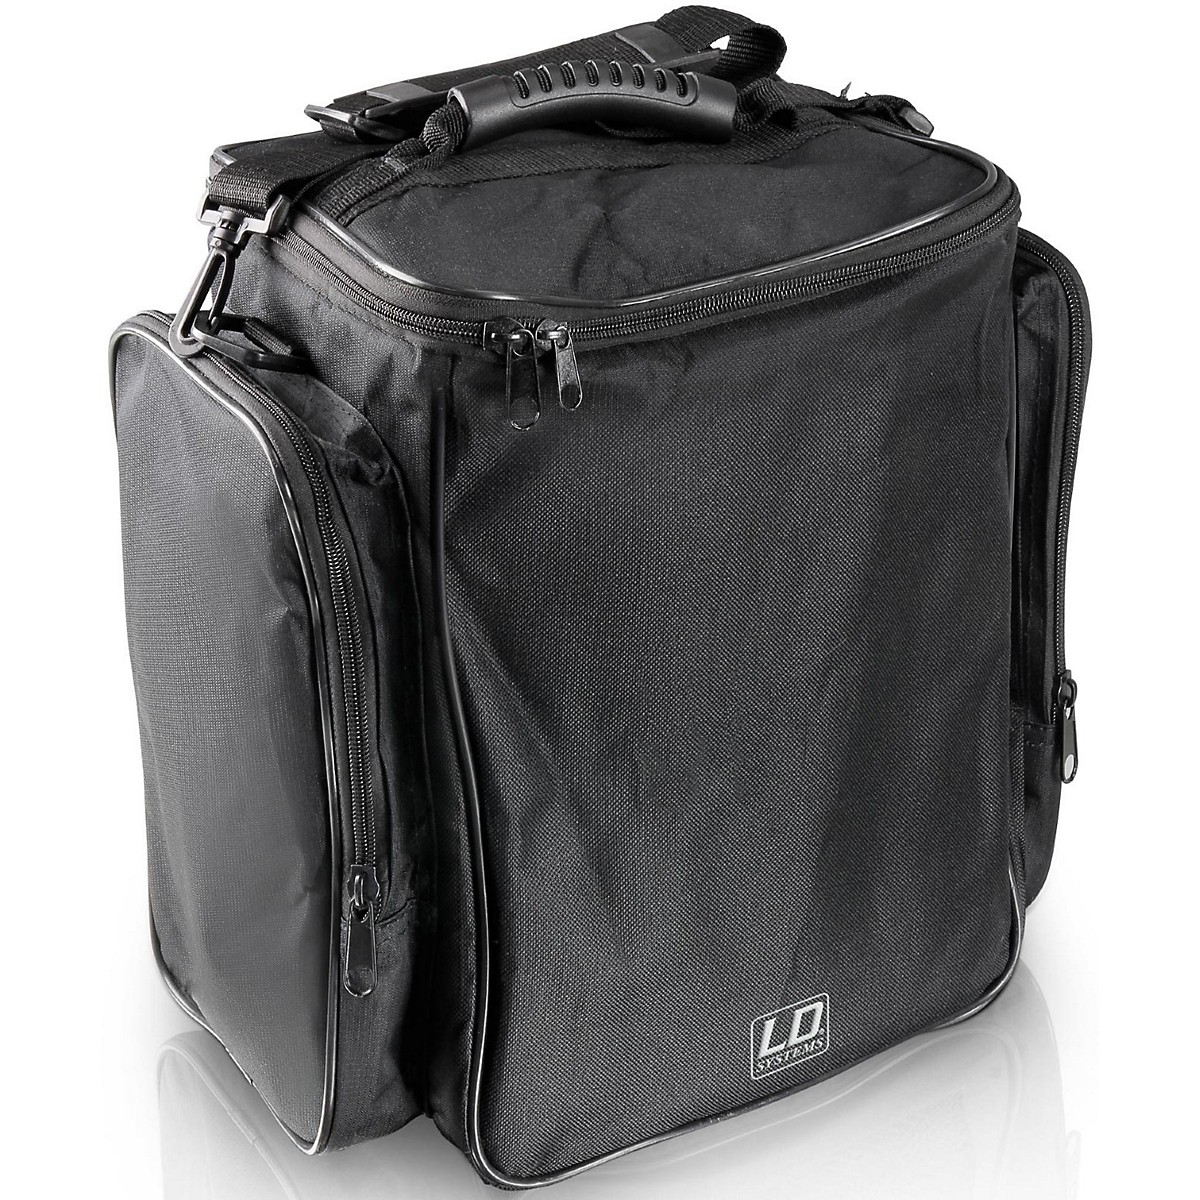 LD Systems STINGER MIX 6 G2 B Padded Carrying Case